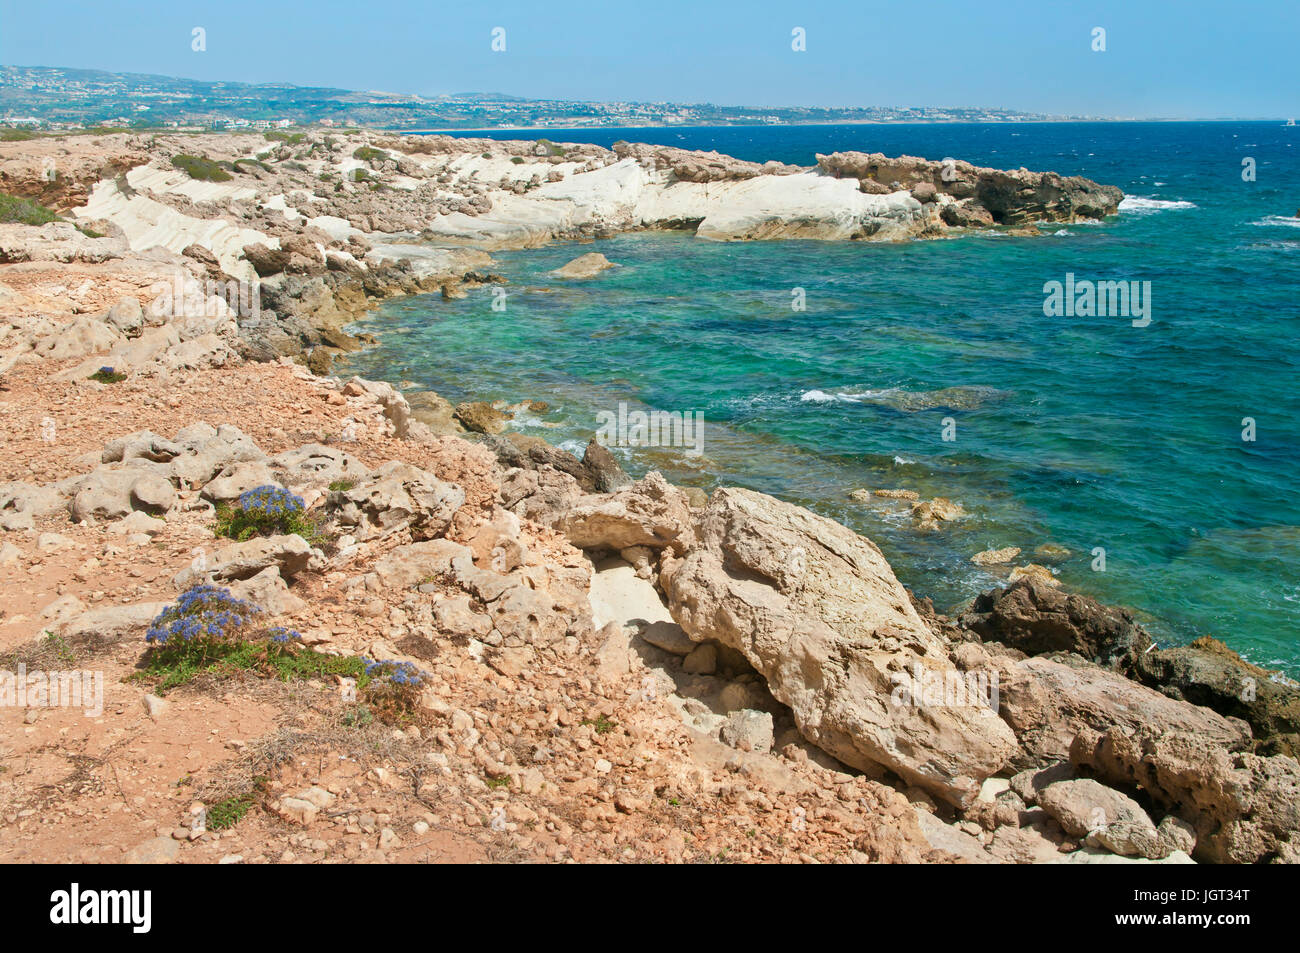 Rocks And Sea At Coral Bay Cyprus Stock Photo Alamy